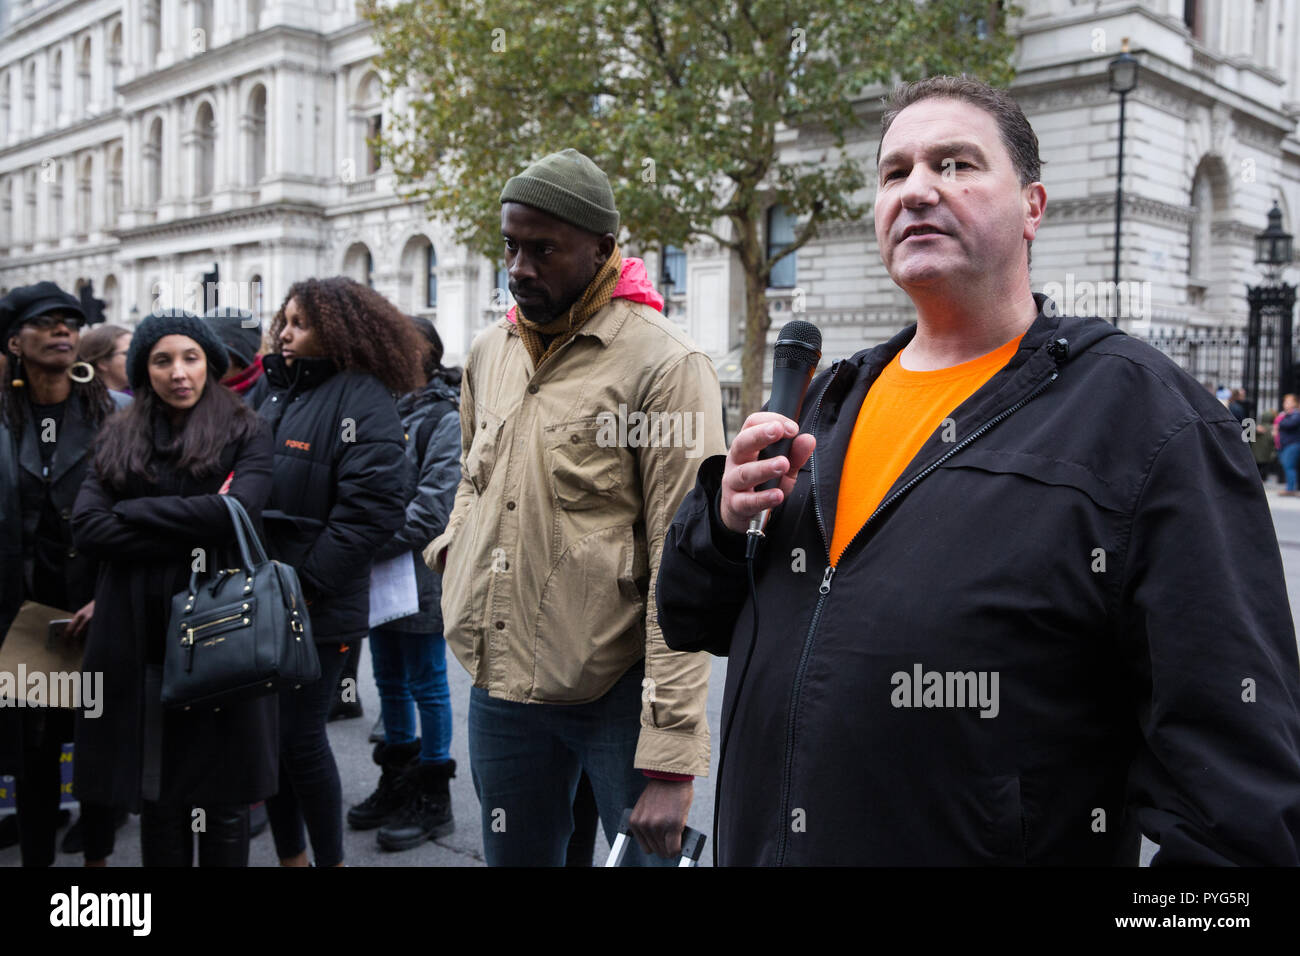 London, UK. 27th October, 2018. A relative of Mark Saunders addresses campaigners from the United Families and Friends Campaign (UFFC) taking part in the 20th annual procession to Downing Street in remembrance of family members and friends who died in police custody, prison, immigration detention or secure psychiatric hospitals. Credit: Mark Kerrison/Alamy Live News - Stock Image